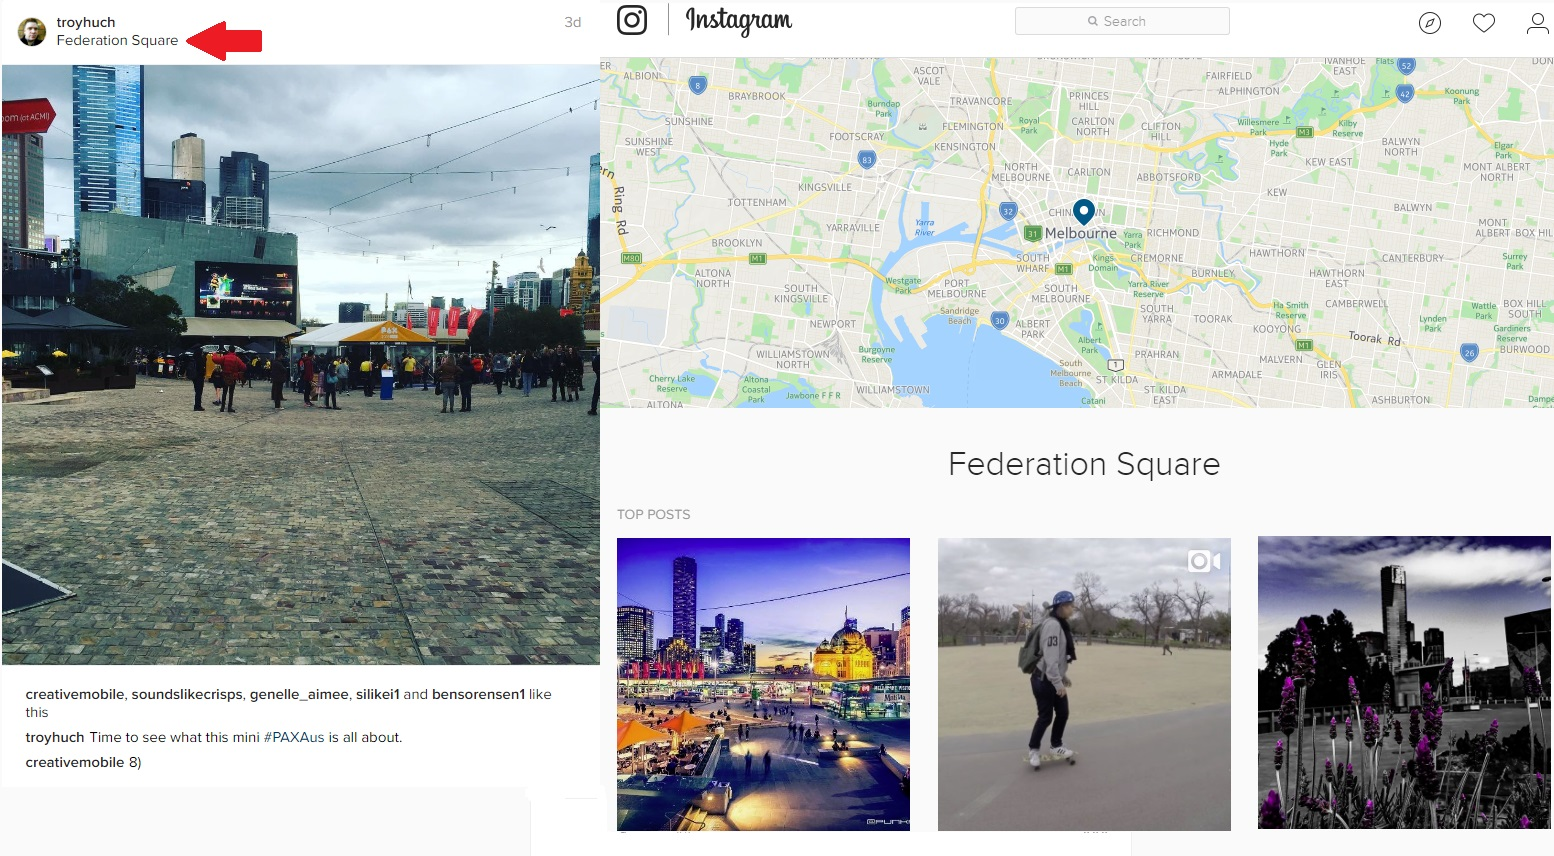 Instagram Removing Photo Maps Option, Adds New Light Level Detection Tool | Social Media Today